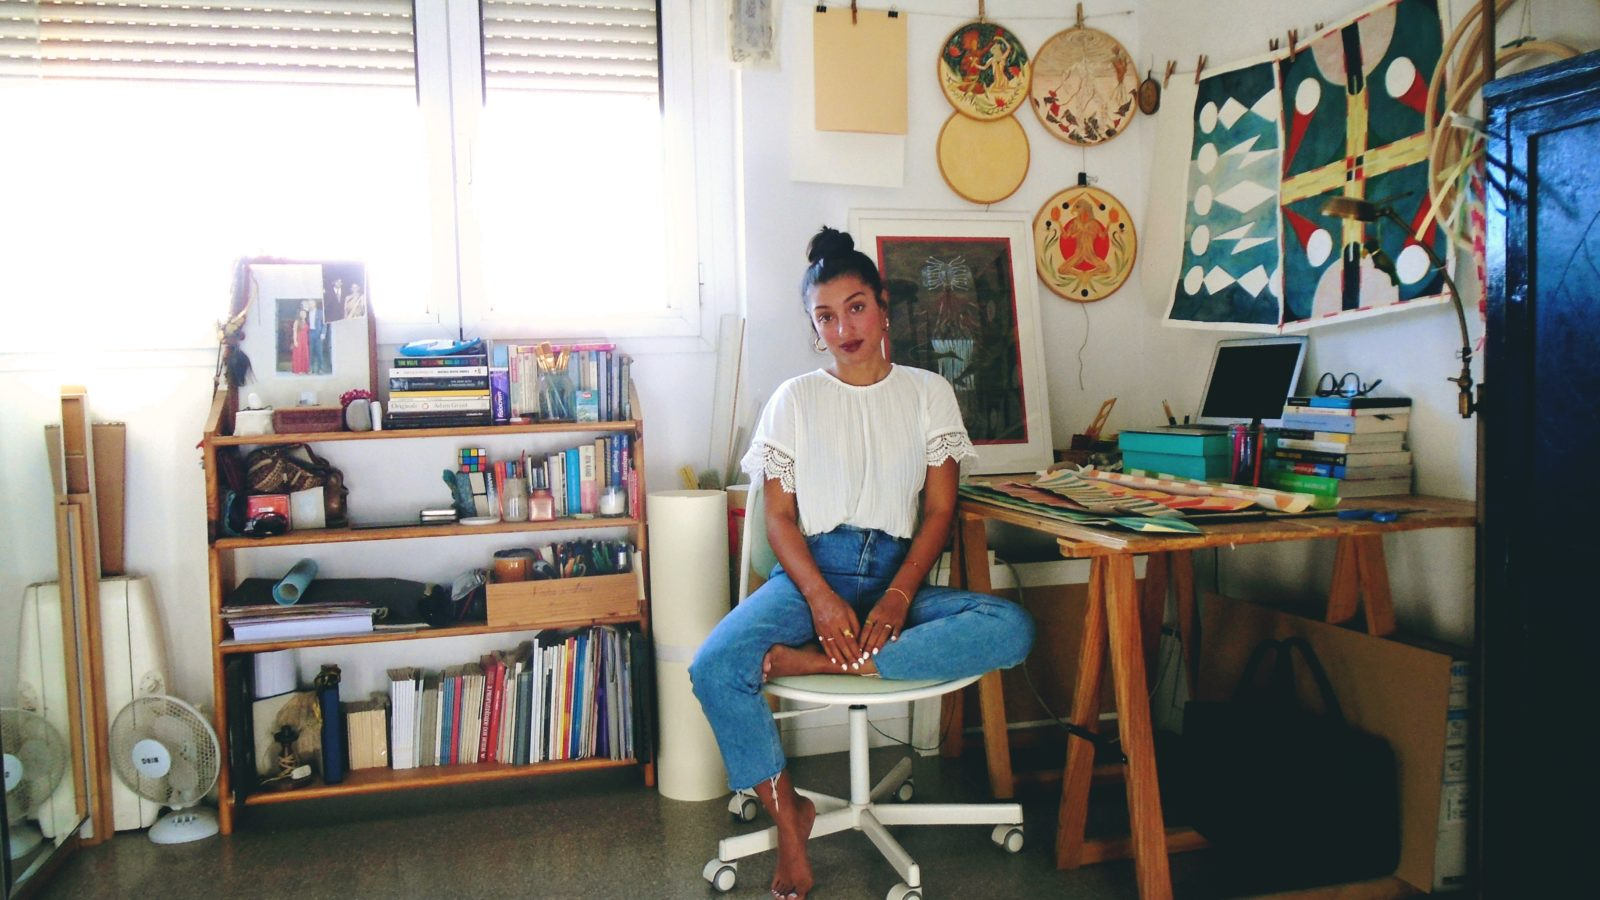 Rithika Merchant in her Barcelona studio, 2019. Courtesy of TARQ Mumbai